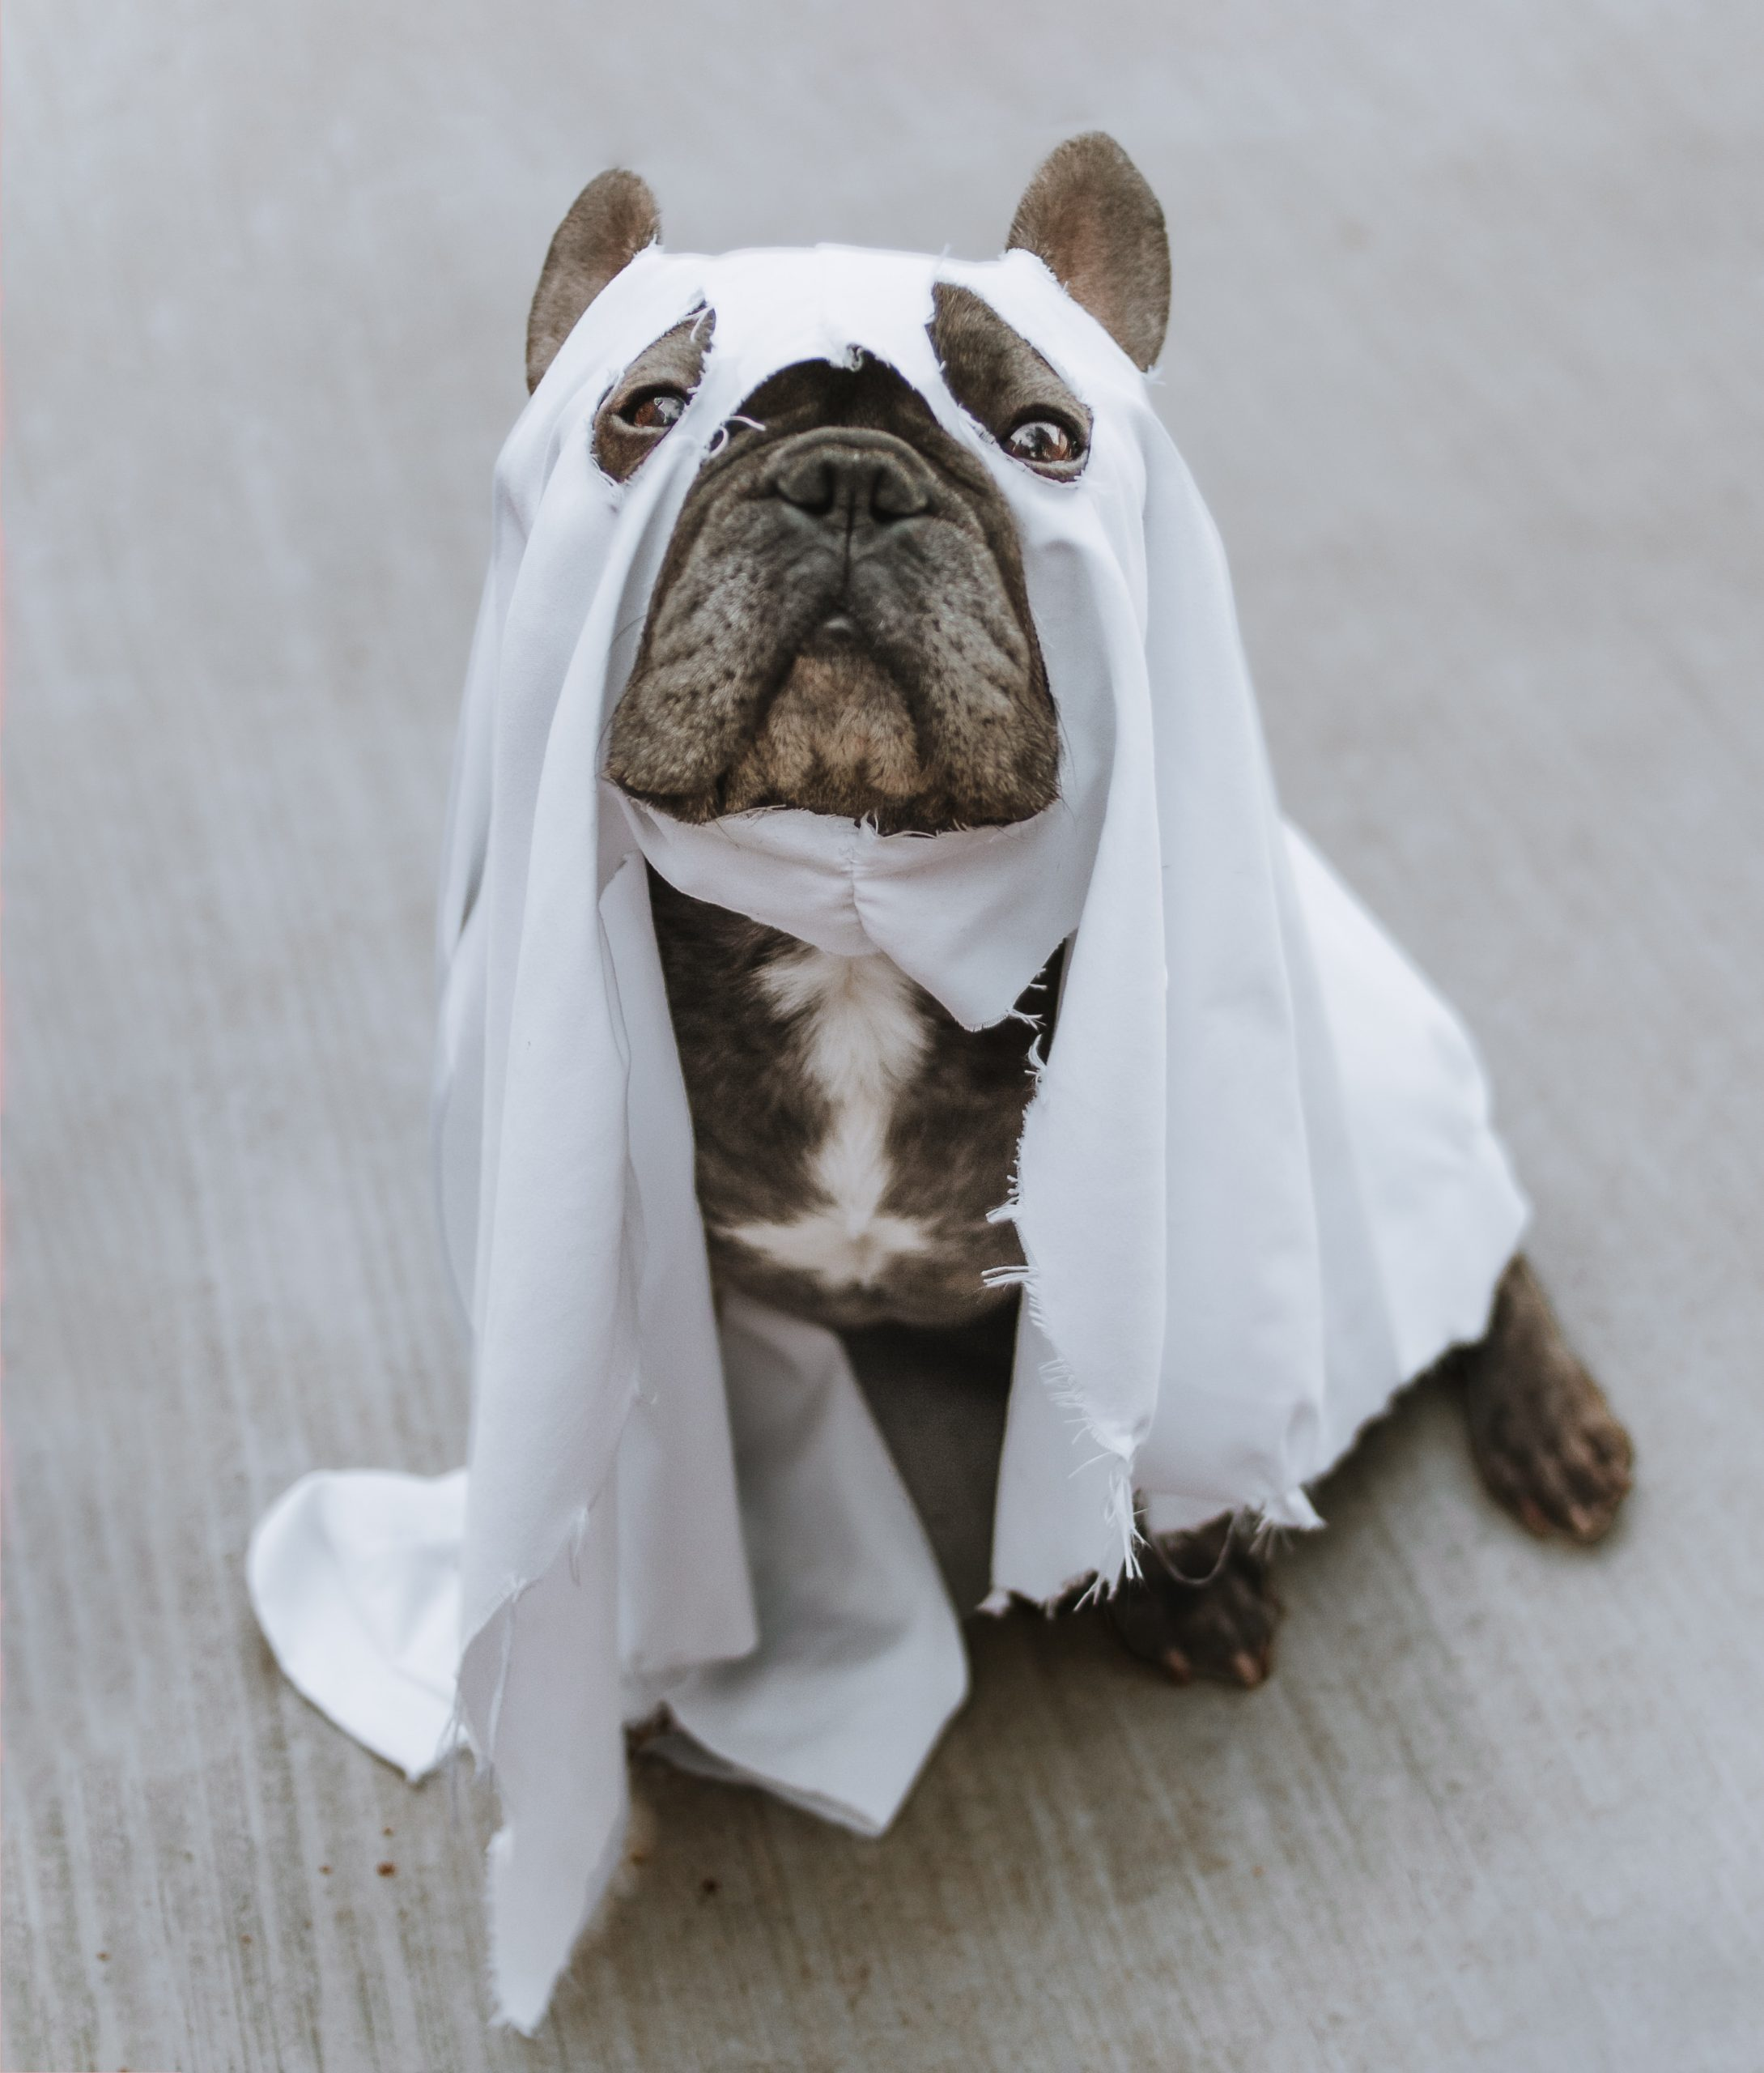 brown and white short coated dog in white textile